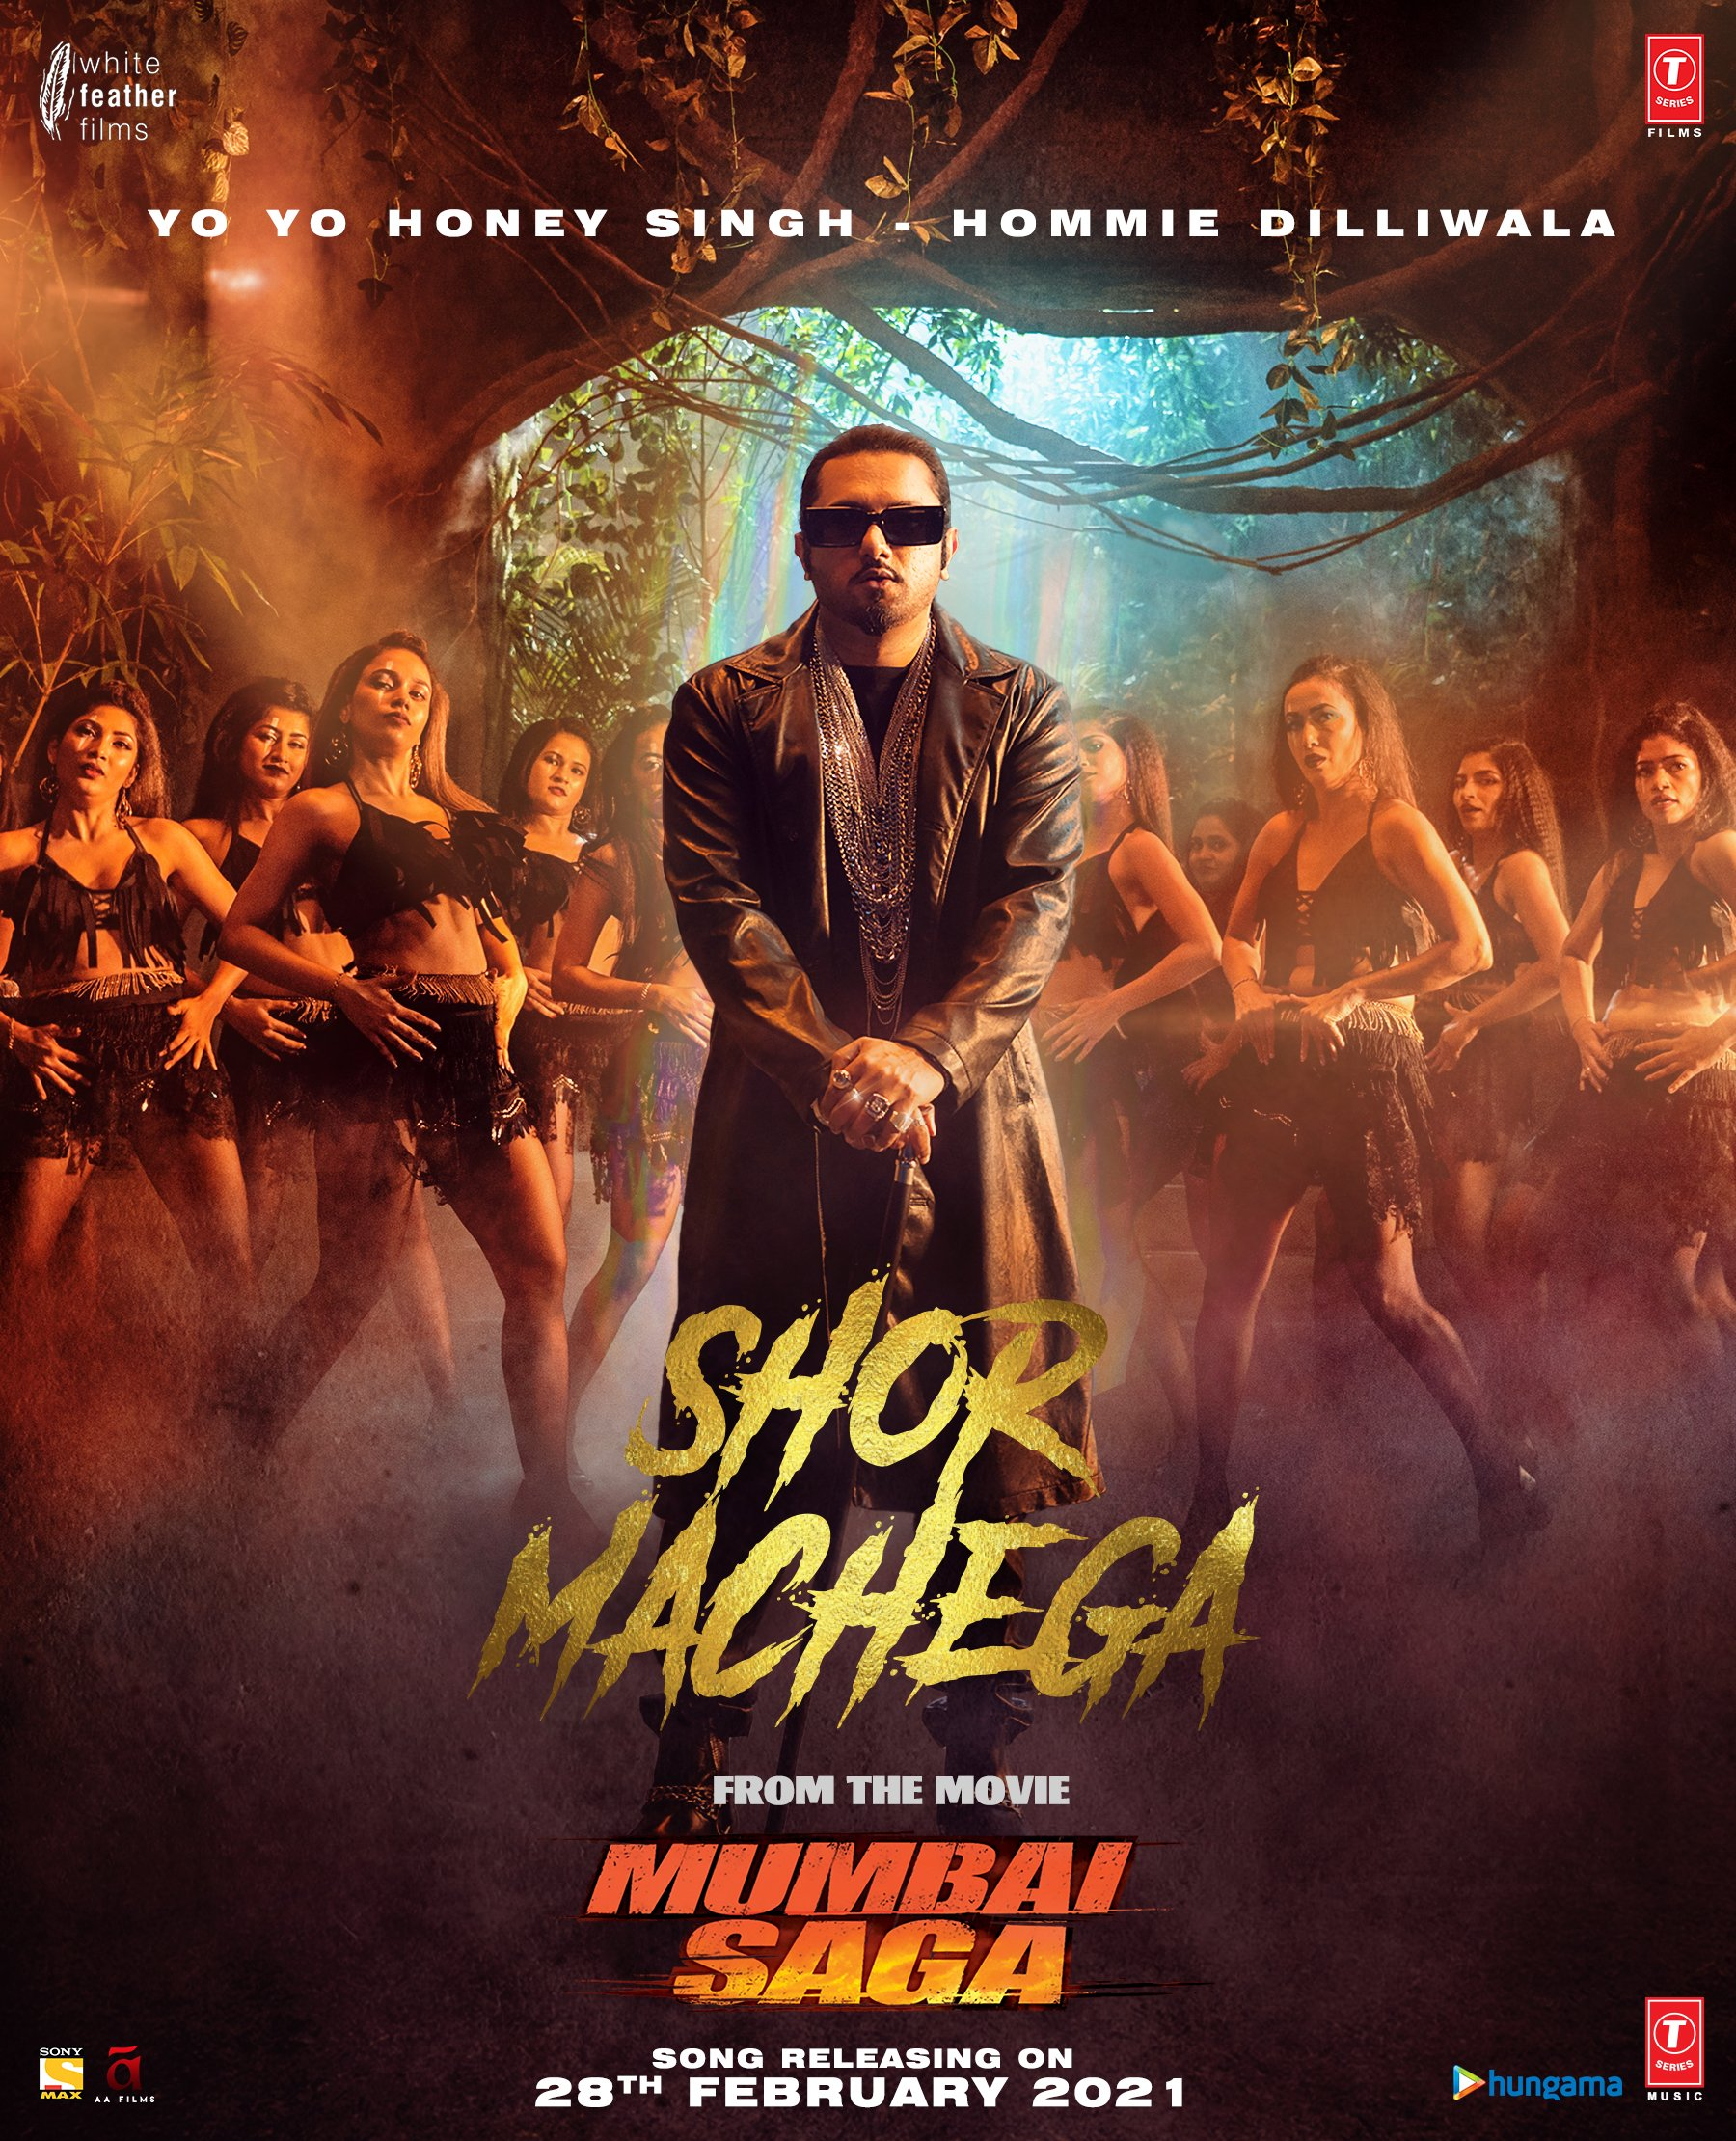 Shor Machega (Mumbai Saga) 2021 By Yo Yo Honey Singh Hindi Video Song 1080p HDRip 98MB Download